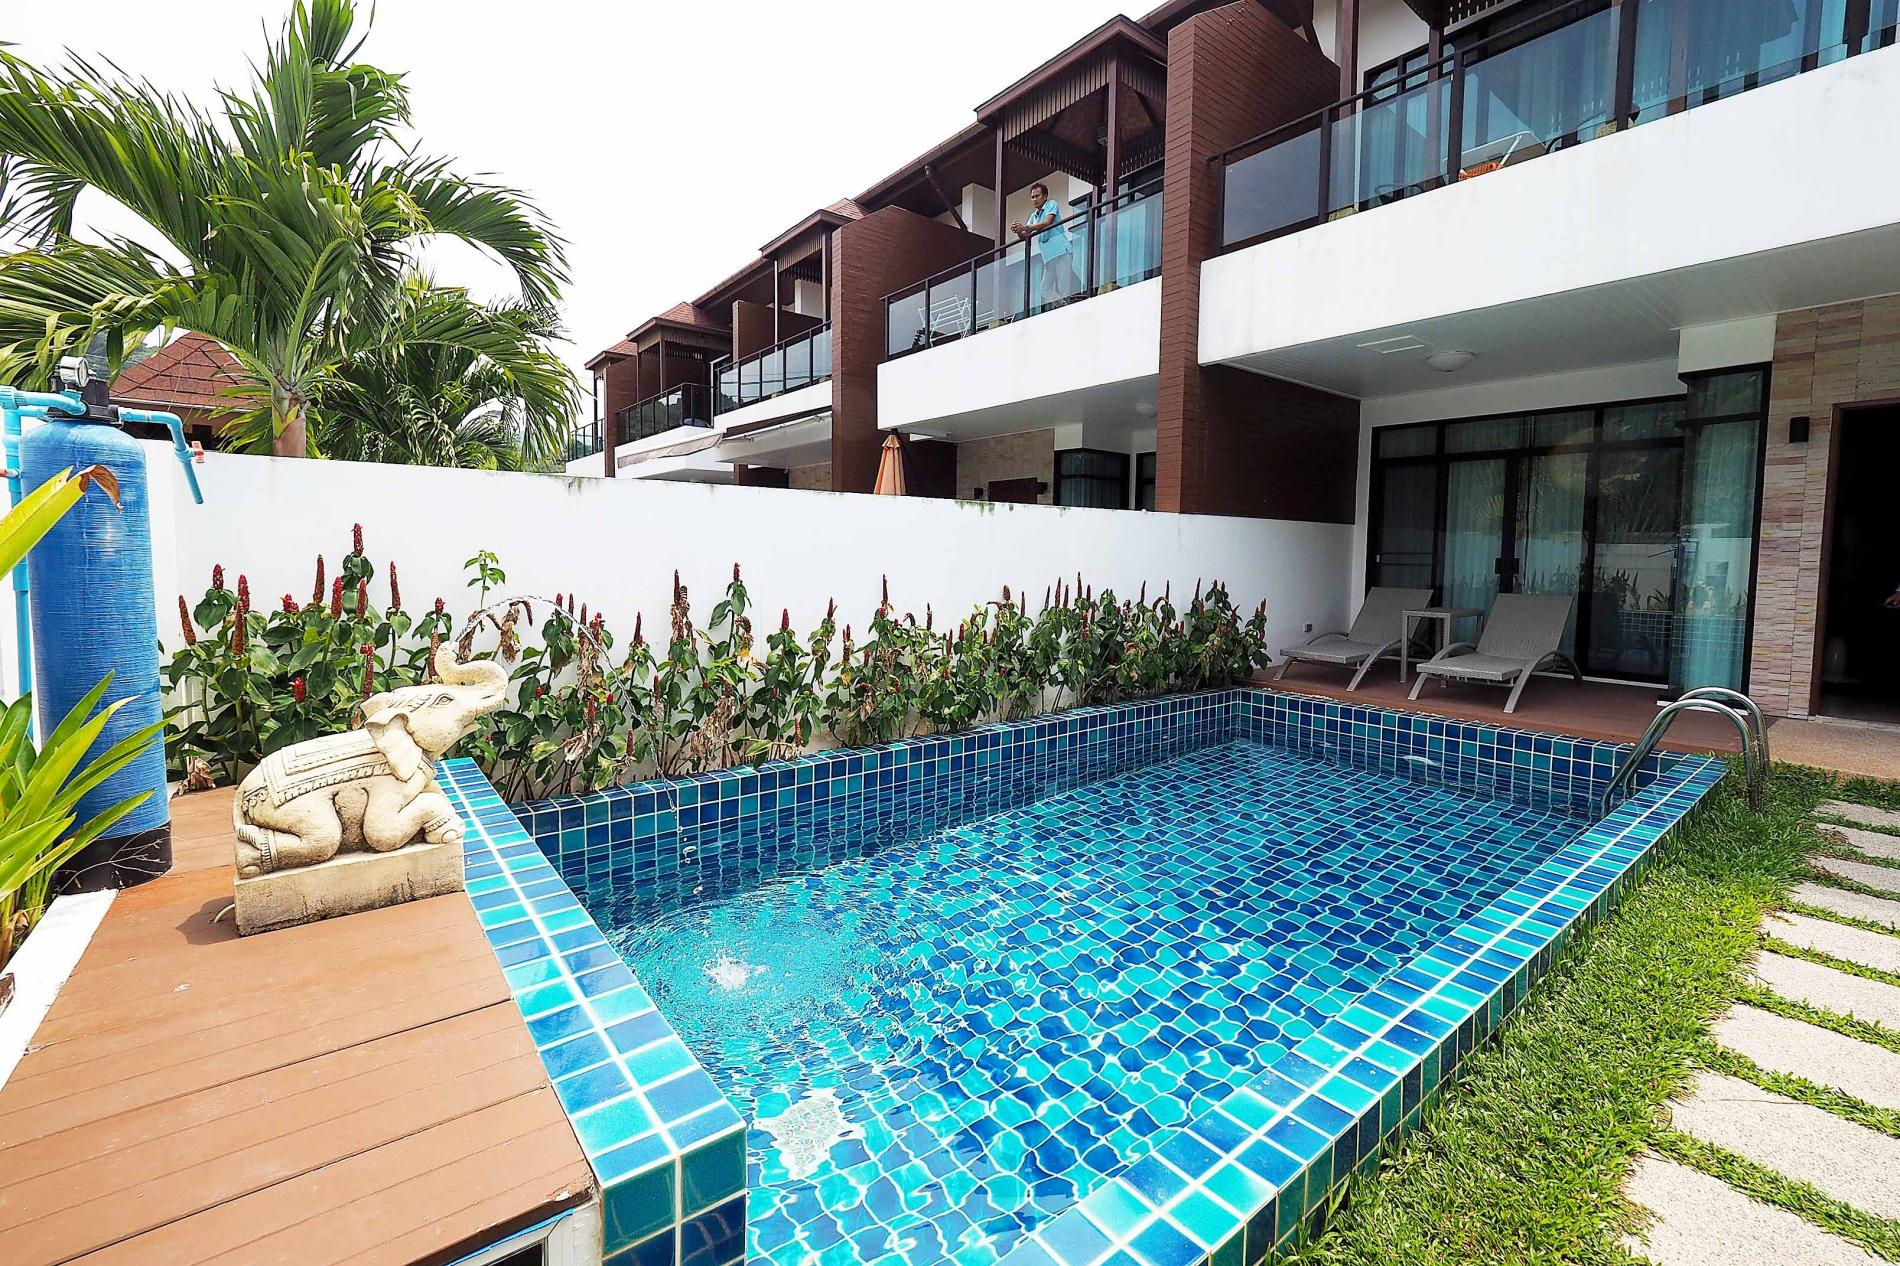 Apartment AP West 5 - Pool villa in Kamala - Great Value  photo 18544483